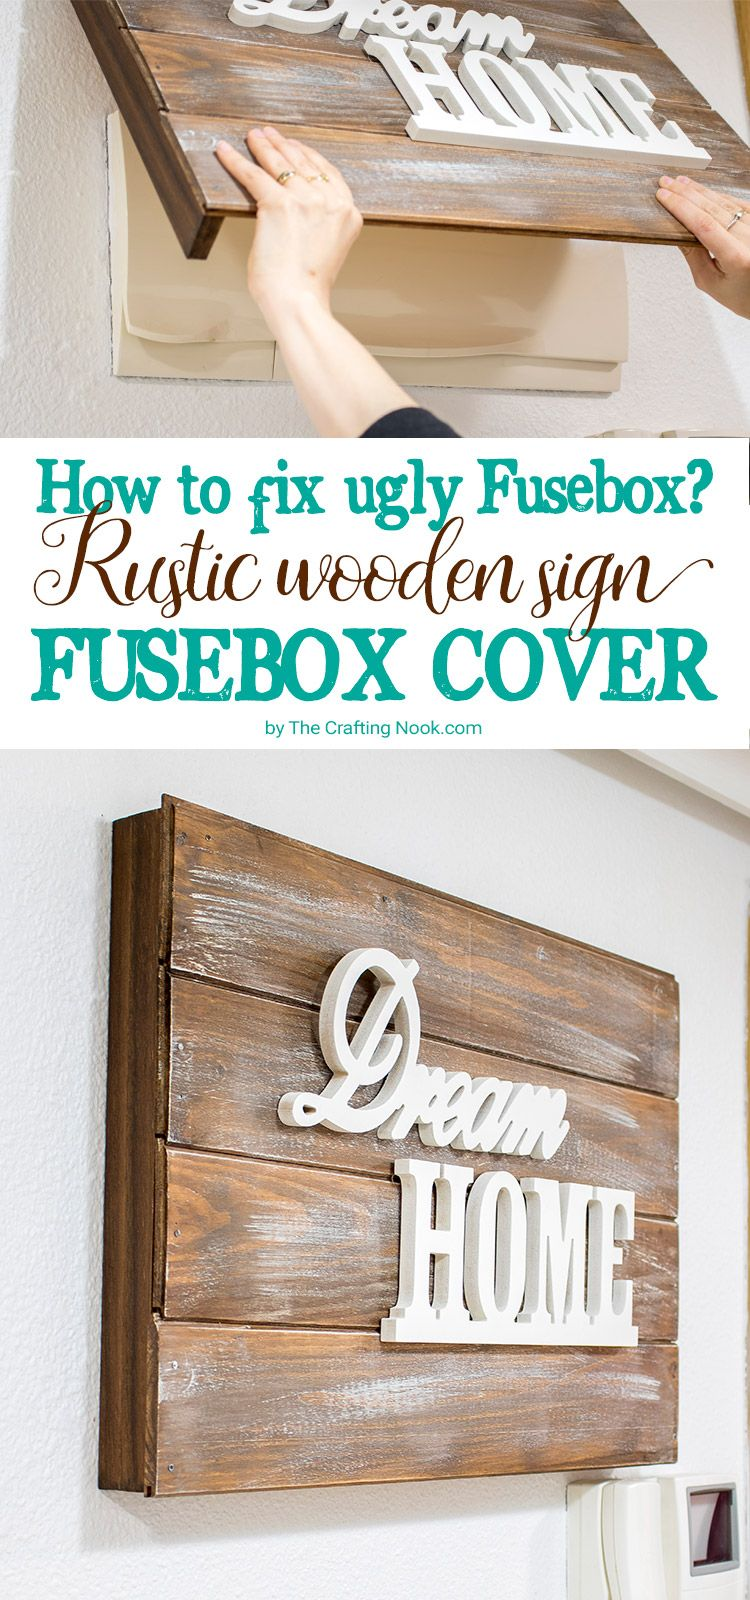 medium resolution of rustic wooden sign fusebox cover how to the crafting nook by titicrafty